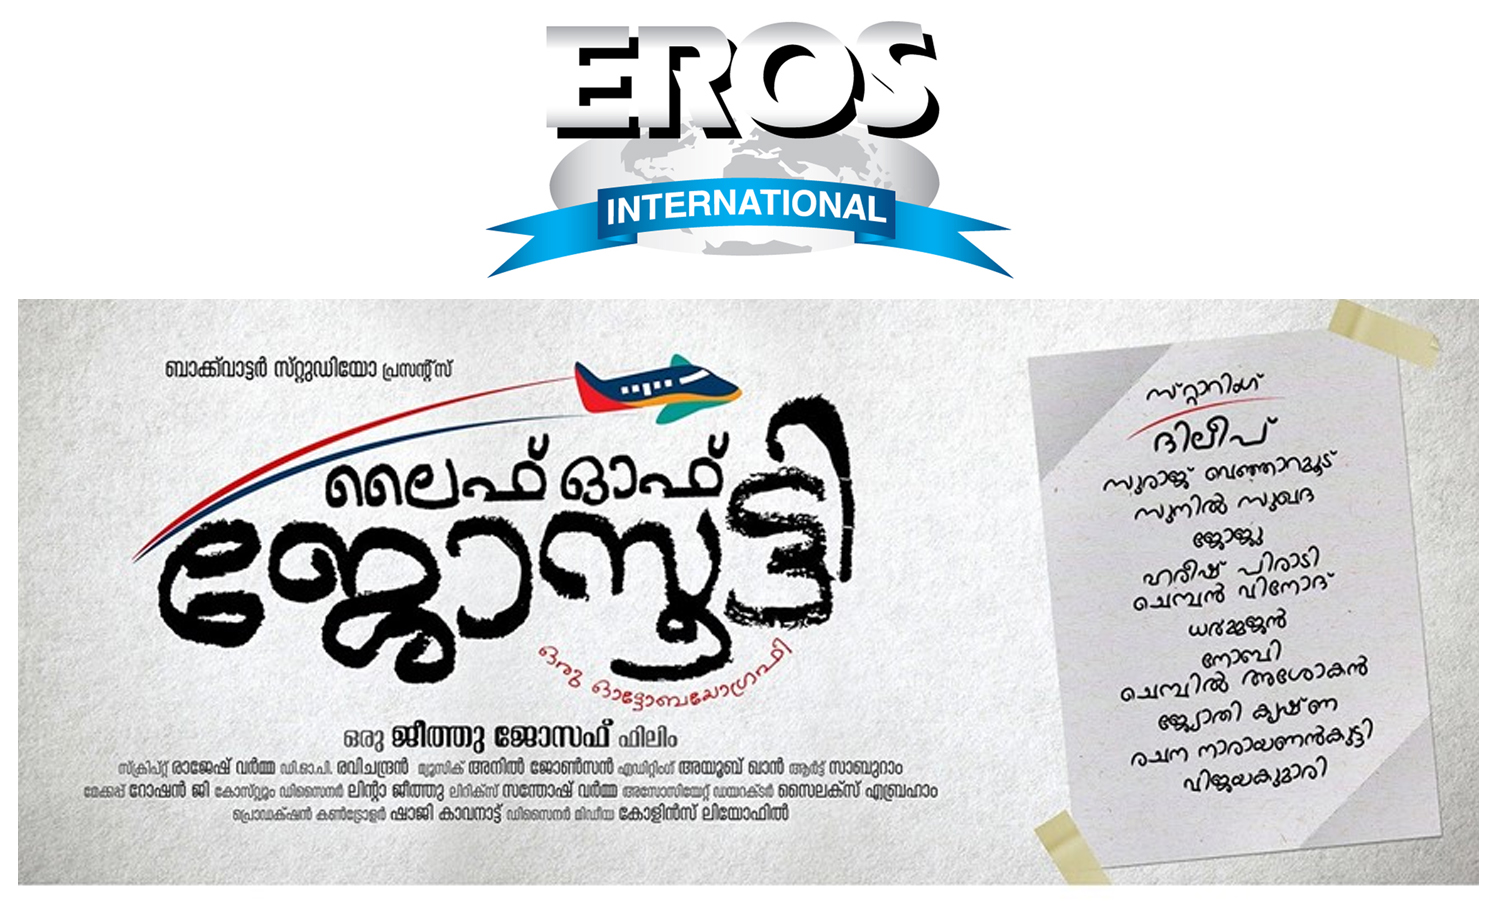 Eros International to link up with a Malayalam movie-Life of josootty-Dileep-Jeethu Joseph-Onlookers Media